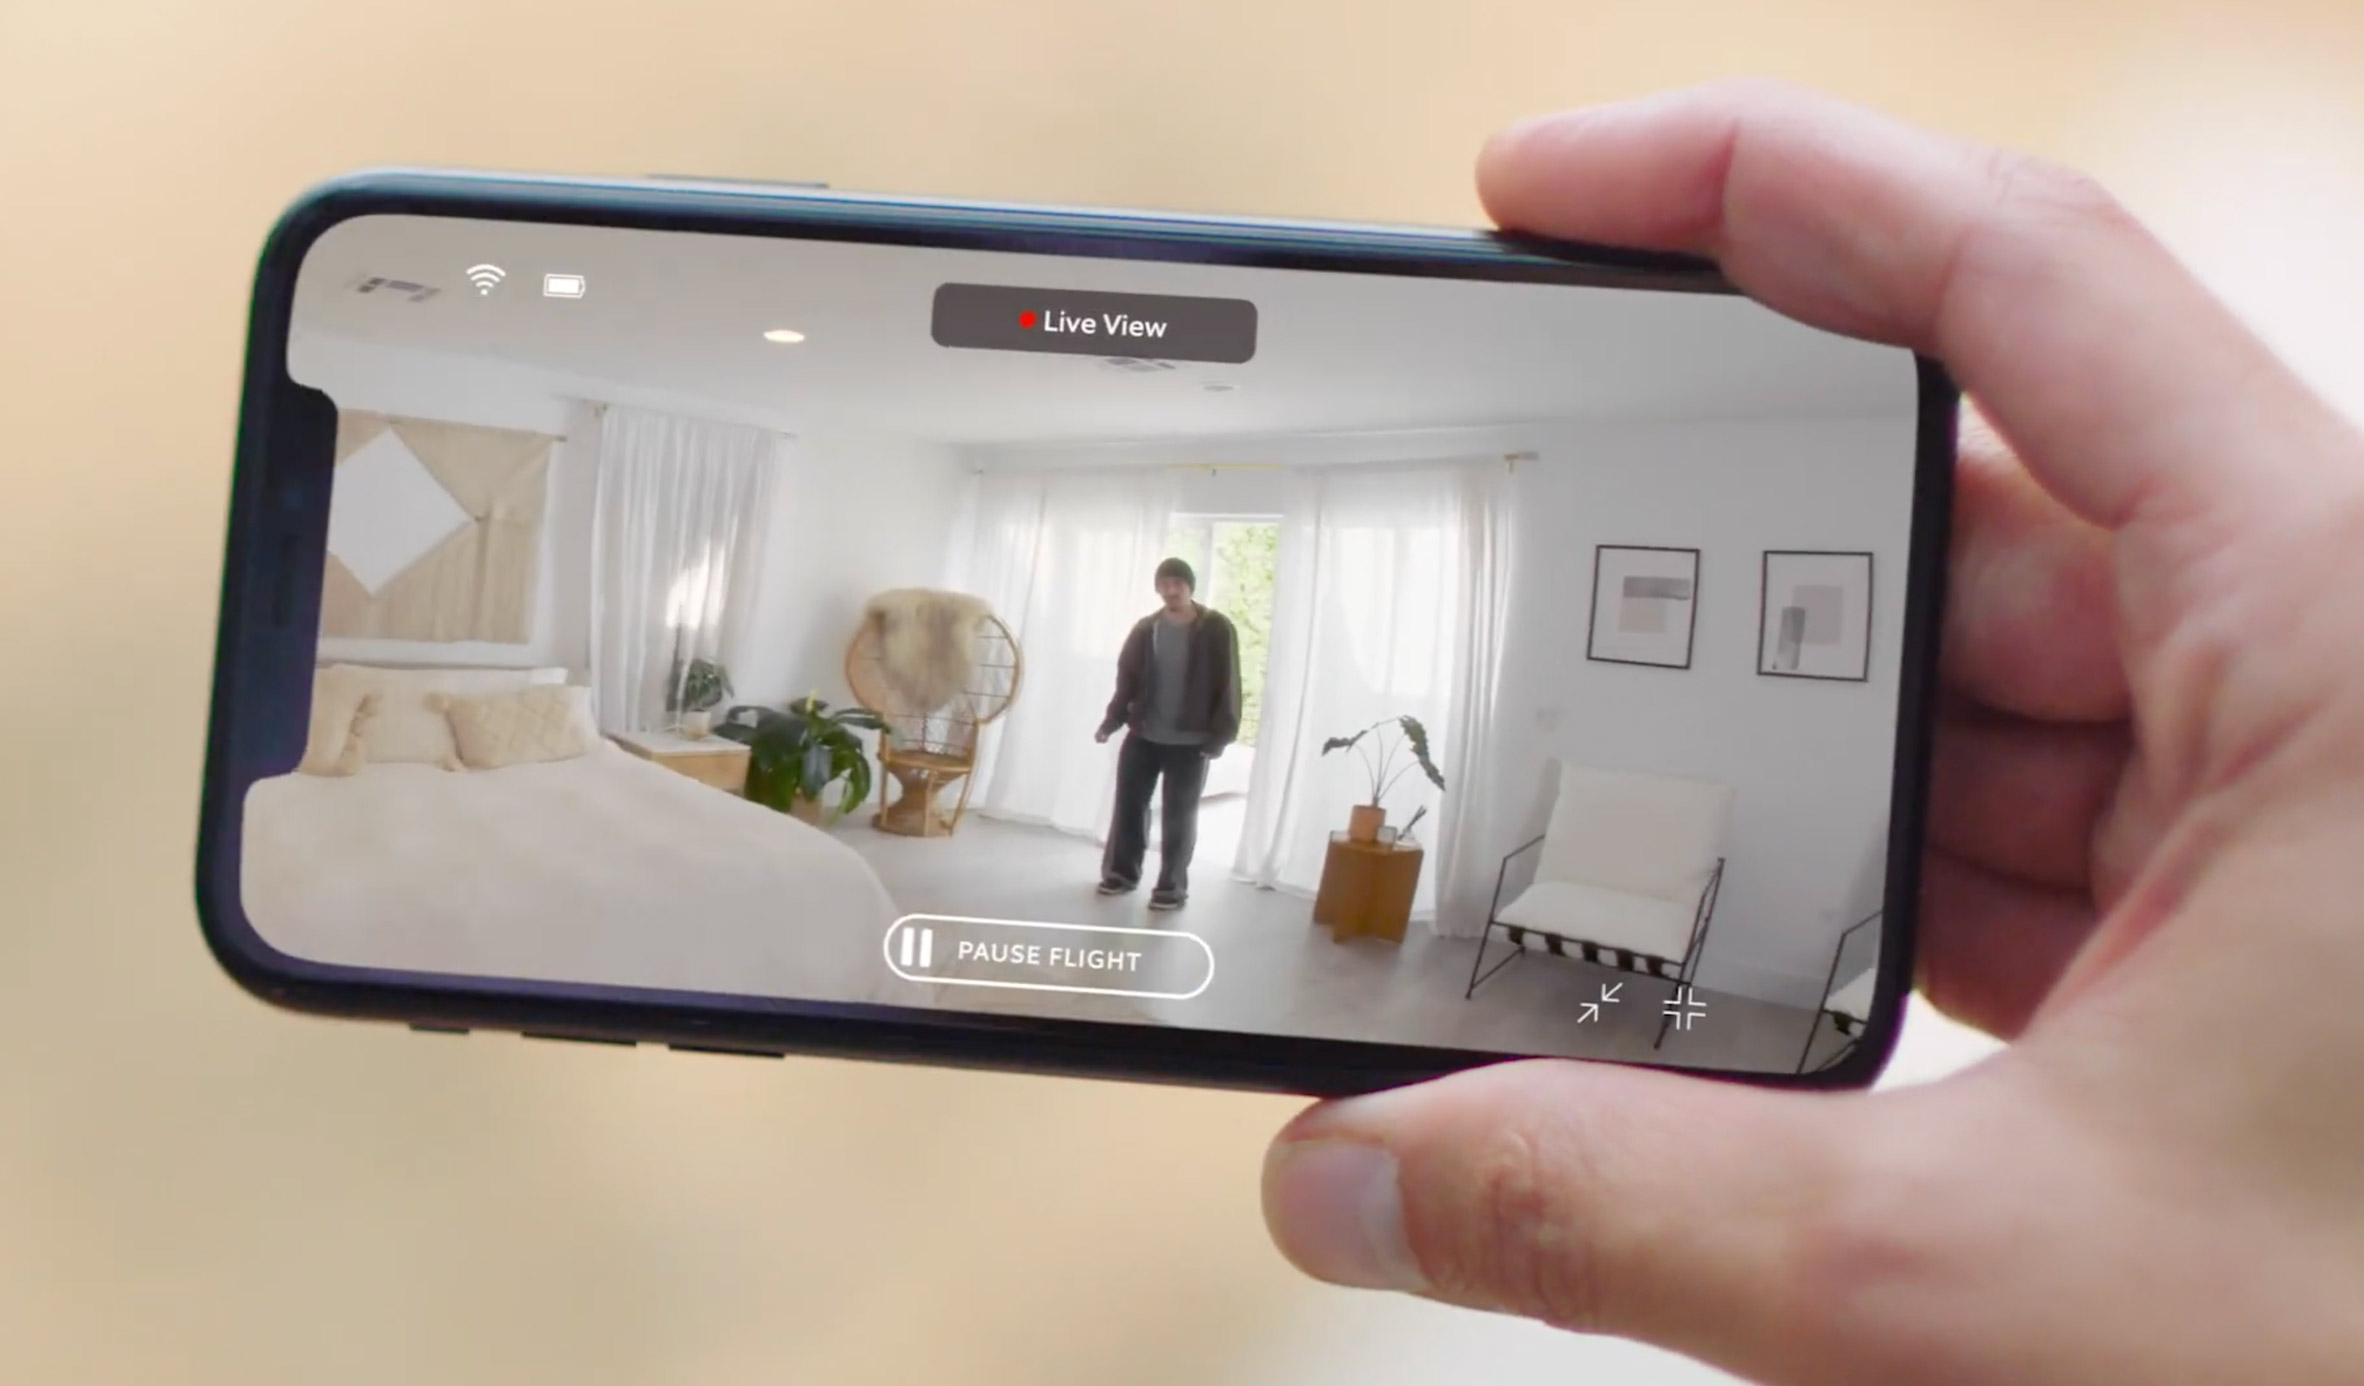 Amazon's Ring Always Home Cam connects to smartphones so users can watch live footage remotely